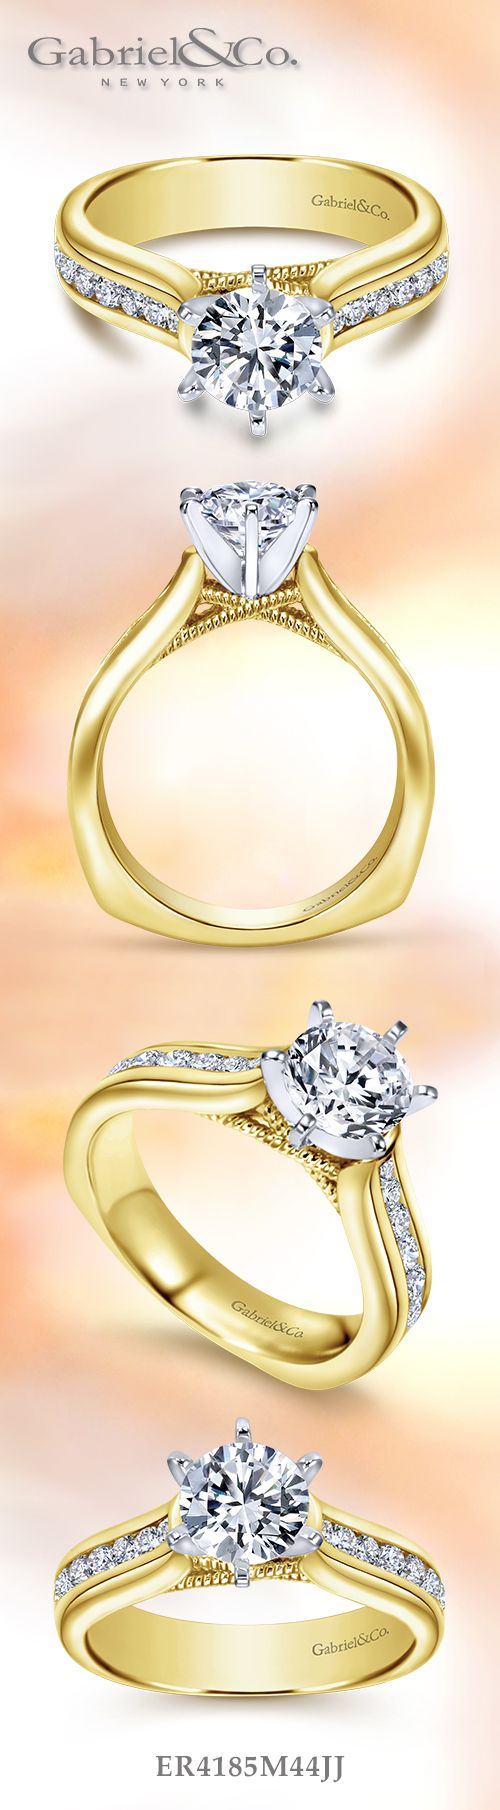 Gabriel & Co. - Voted #1 Most Preferred Bridal Brand.   14k Yellow/White Gold Round Straight Engagement Ring.